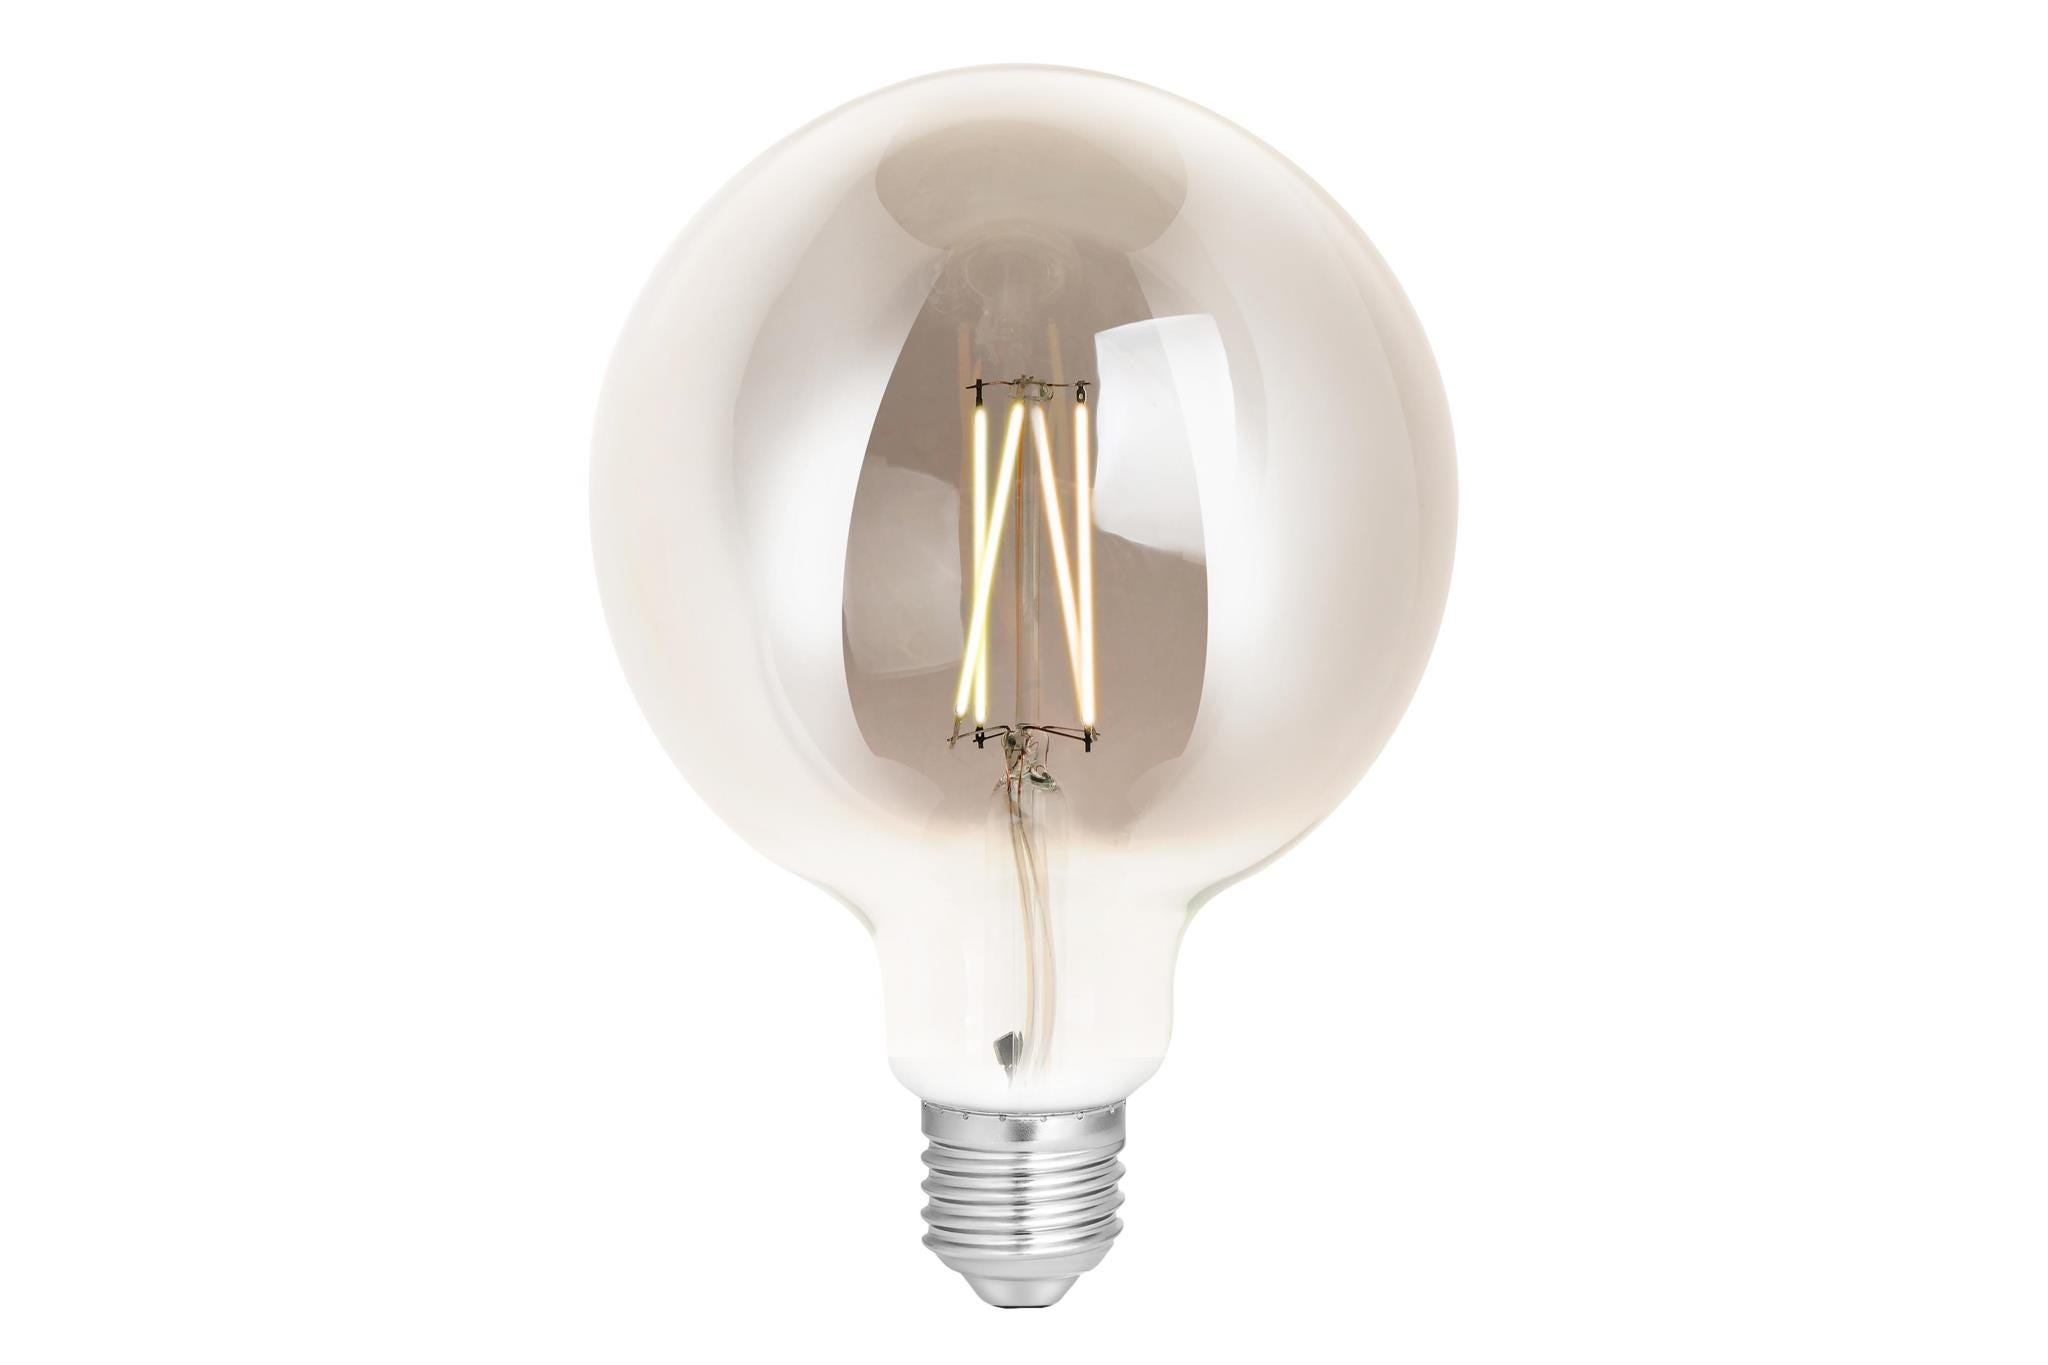 4lite WiZ Connected G125 Edison Filament LED Smart Bulb Smoky White Dimmable WiFi  - E27 Screw